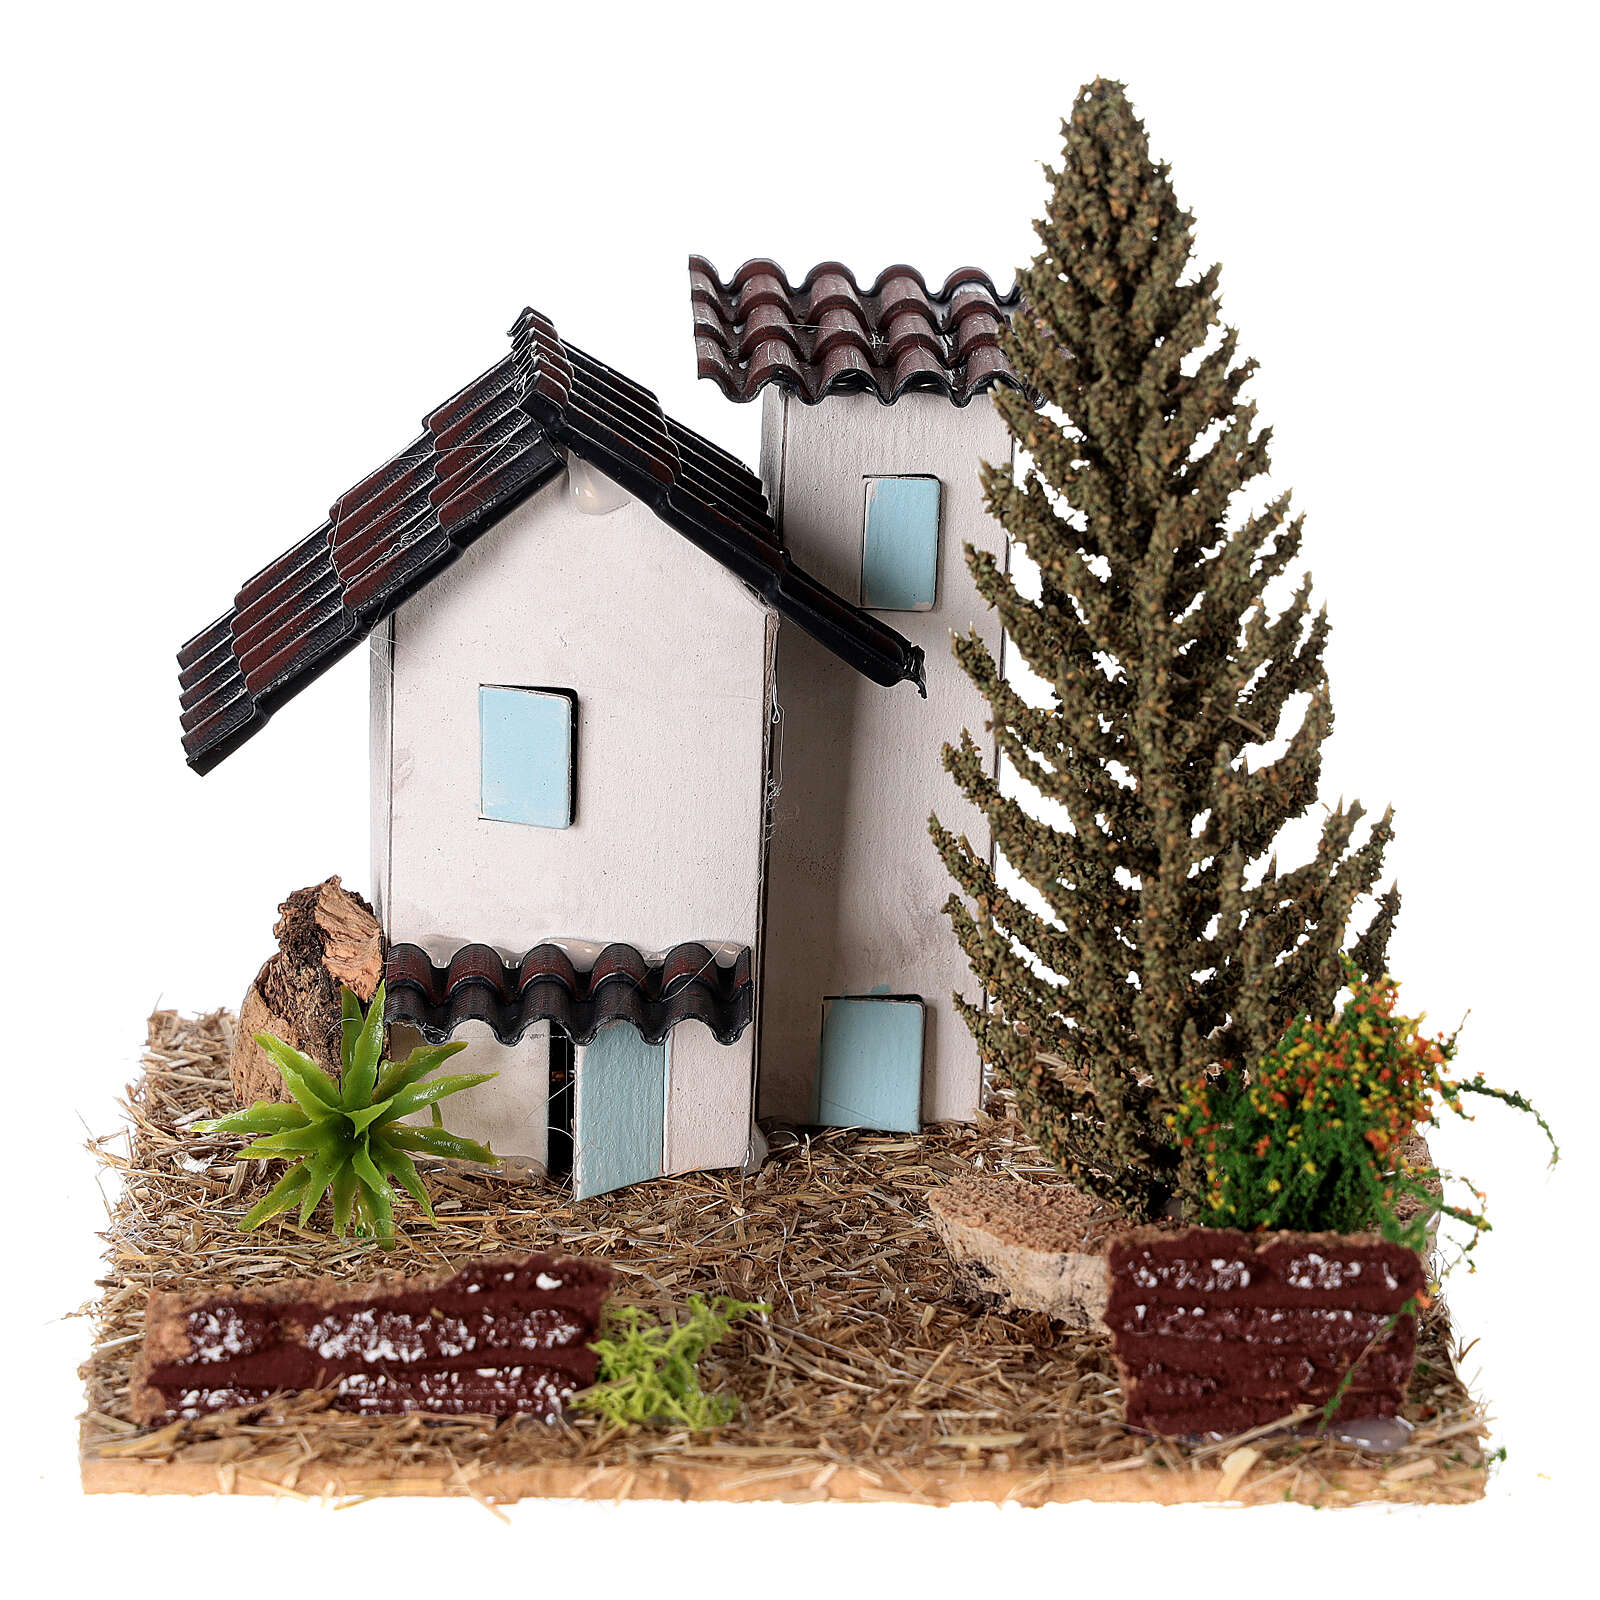 Provençal houses 10x10x10 cm for Nativity scene 4